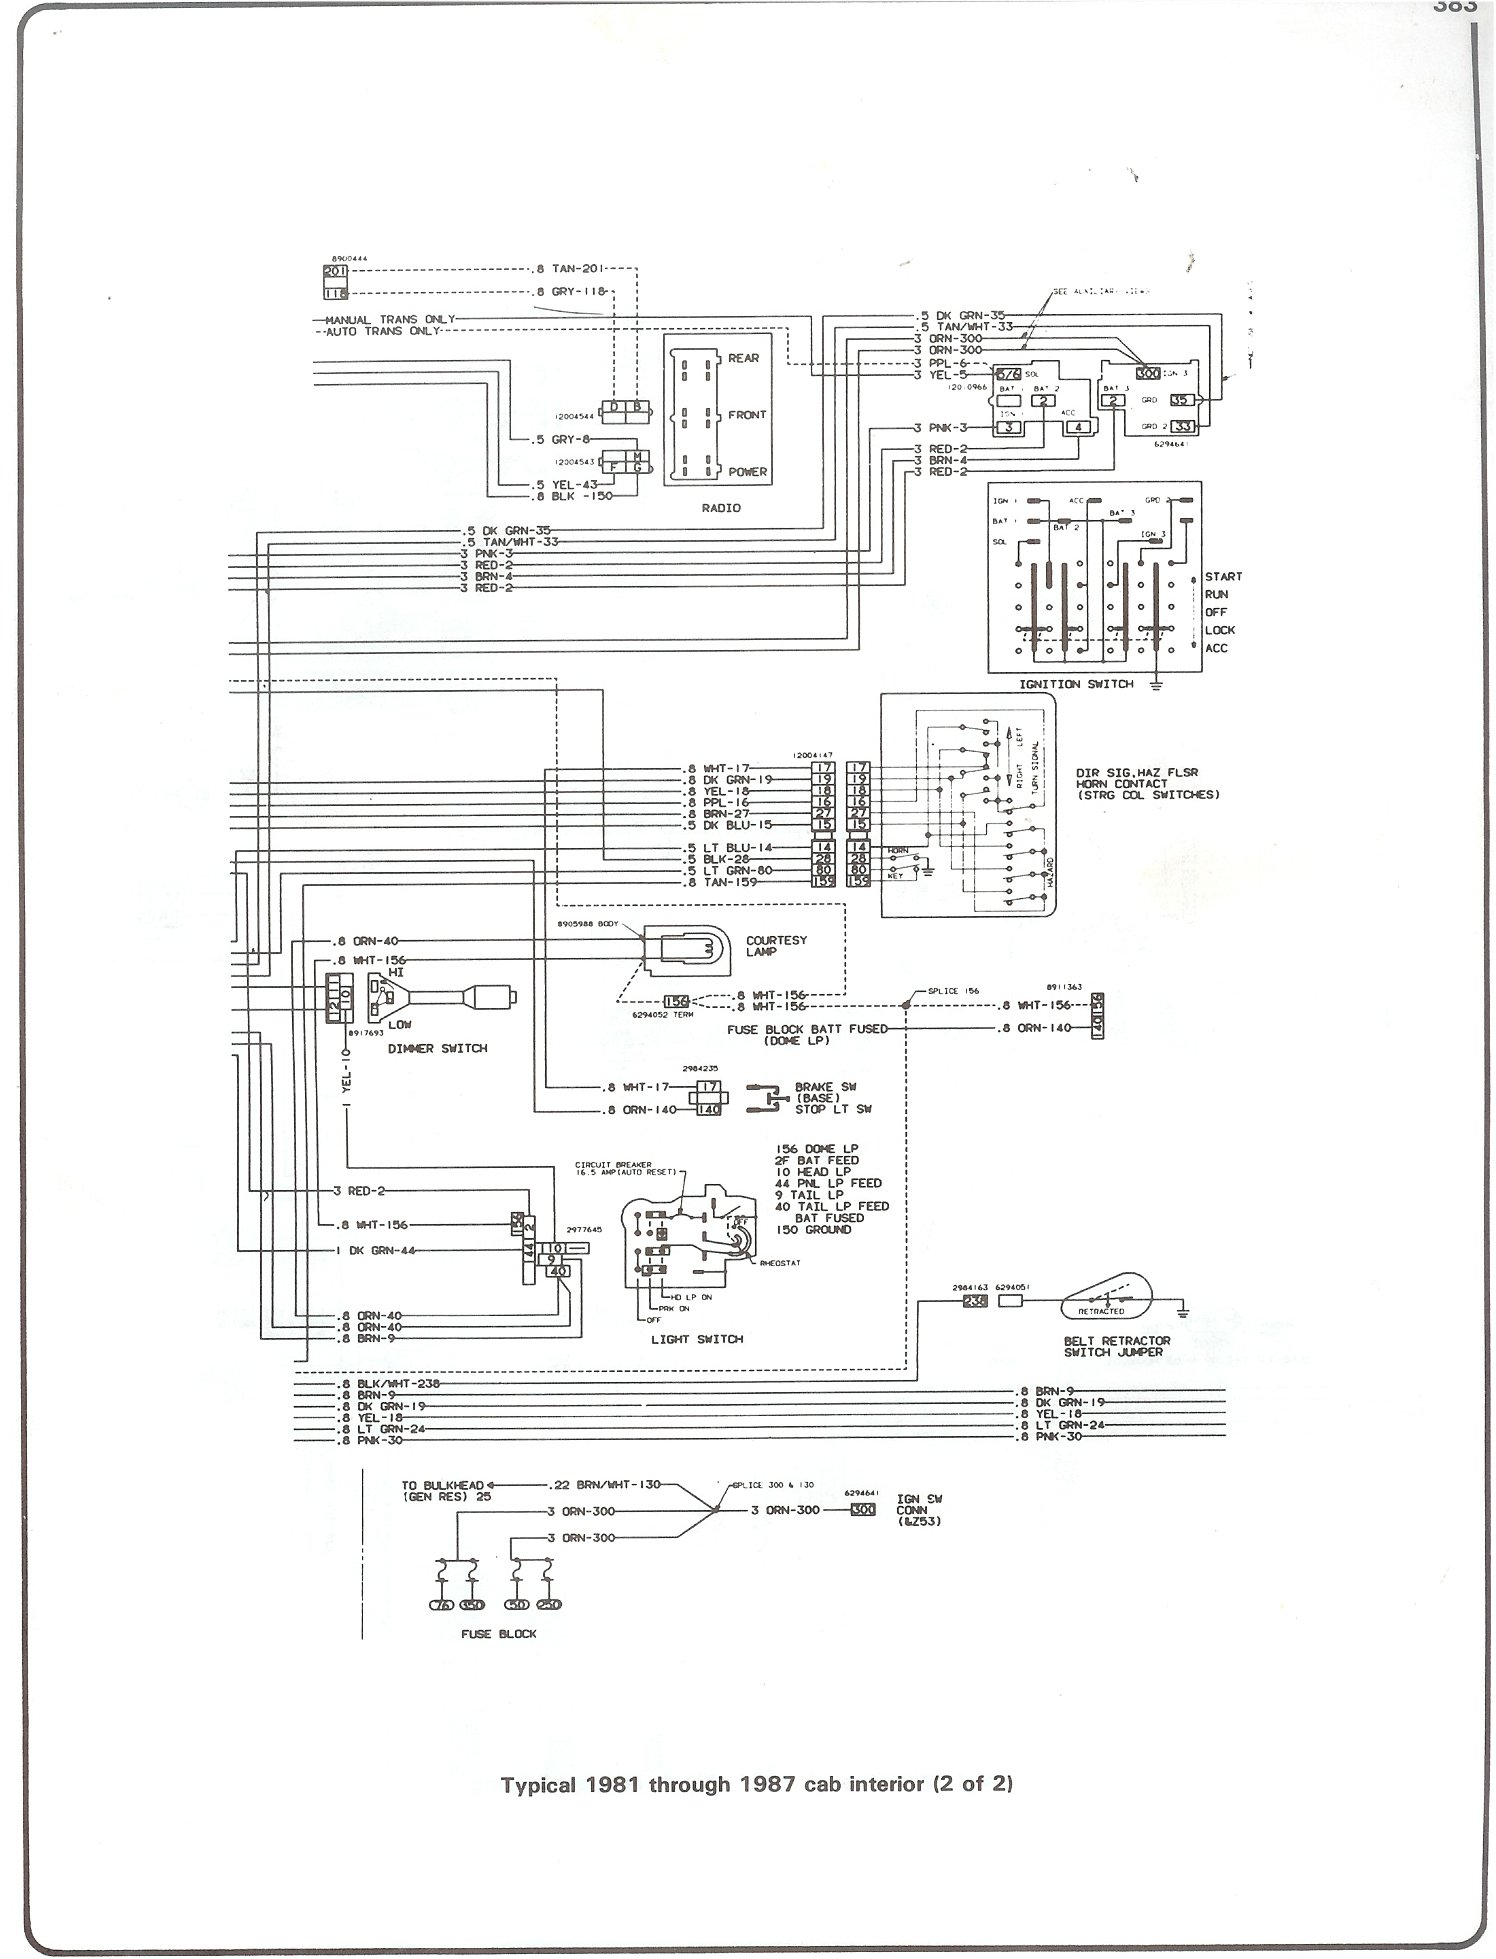 Wiring Yale Schematic Fork Lift Erco3aan Diagram Libraries A295n04913k 87 Dodge Library